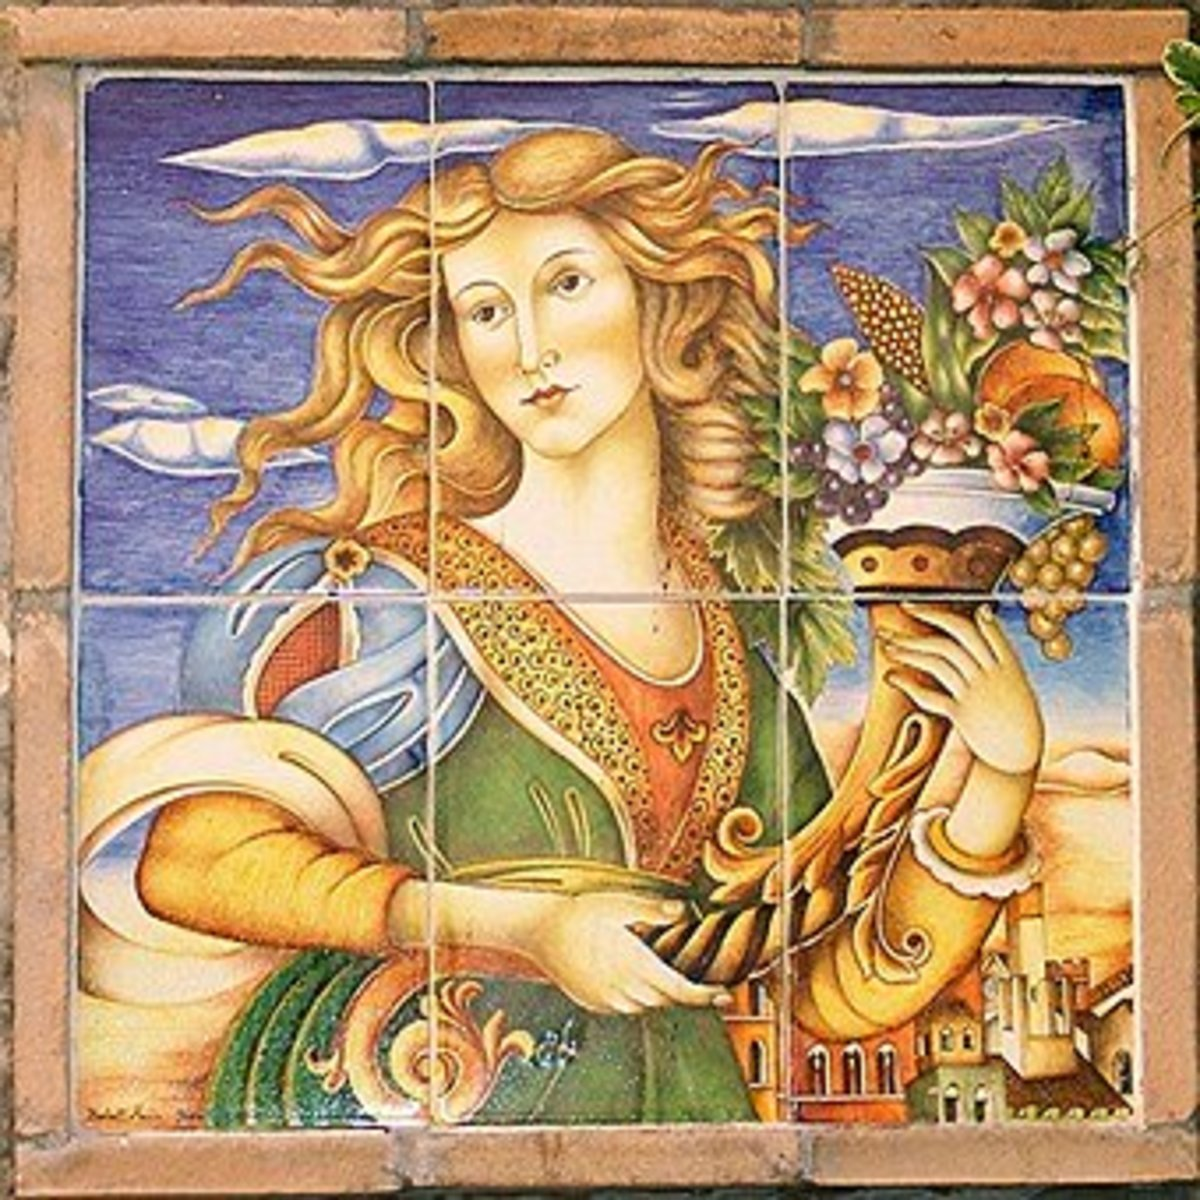 The cornucopia is associated with the goddess Fortuna, the goddess of fortune, either good or bad.  When pictured with a Horn of Plenty, she is the goddess of good fortune.